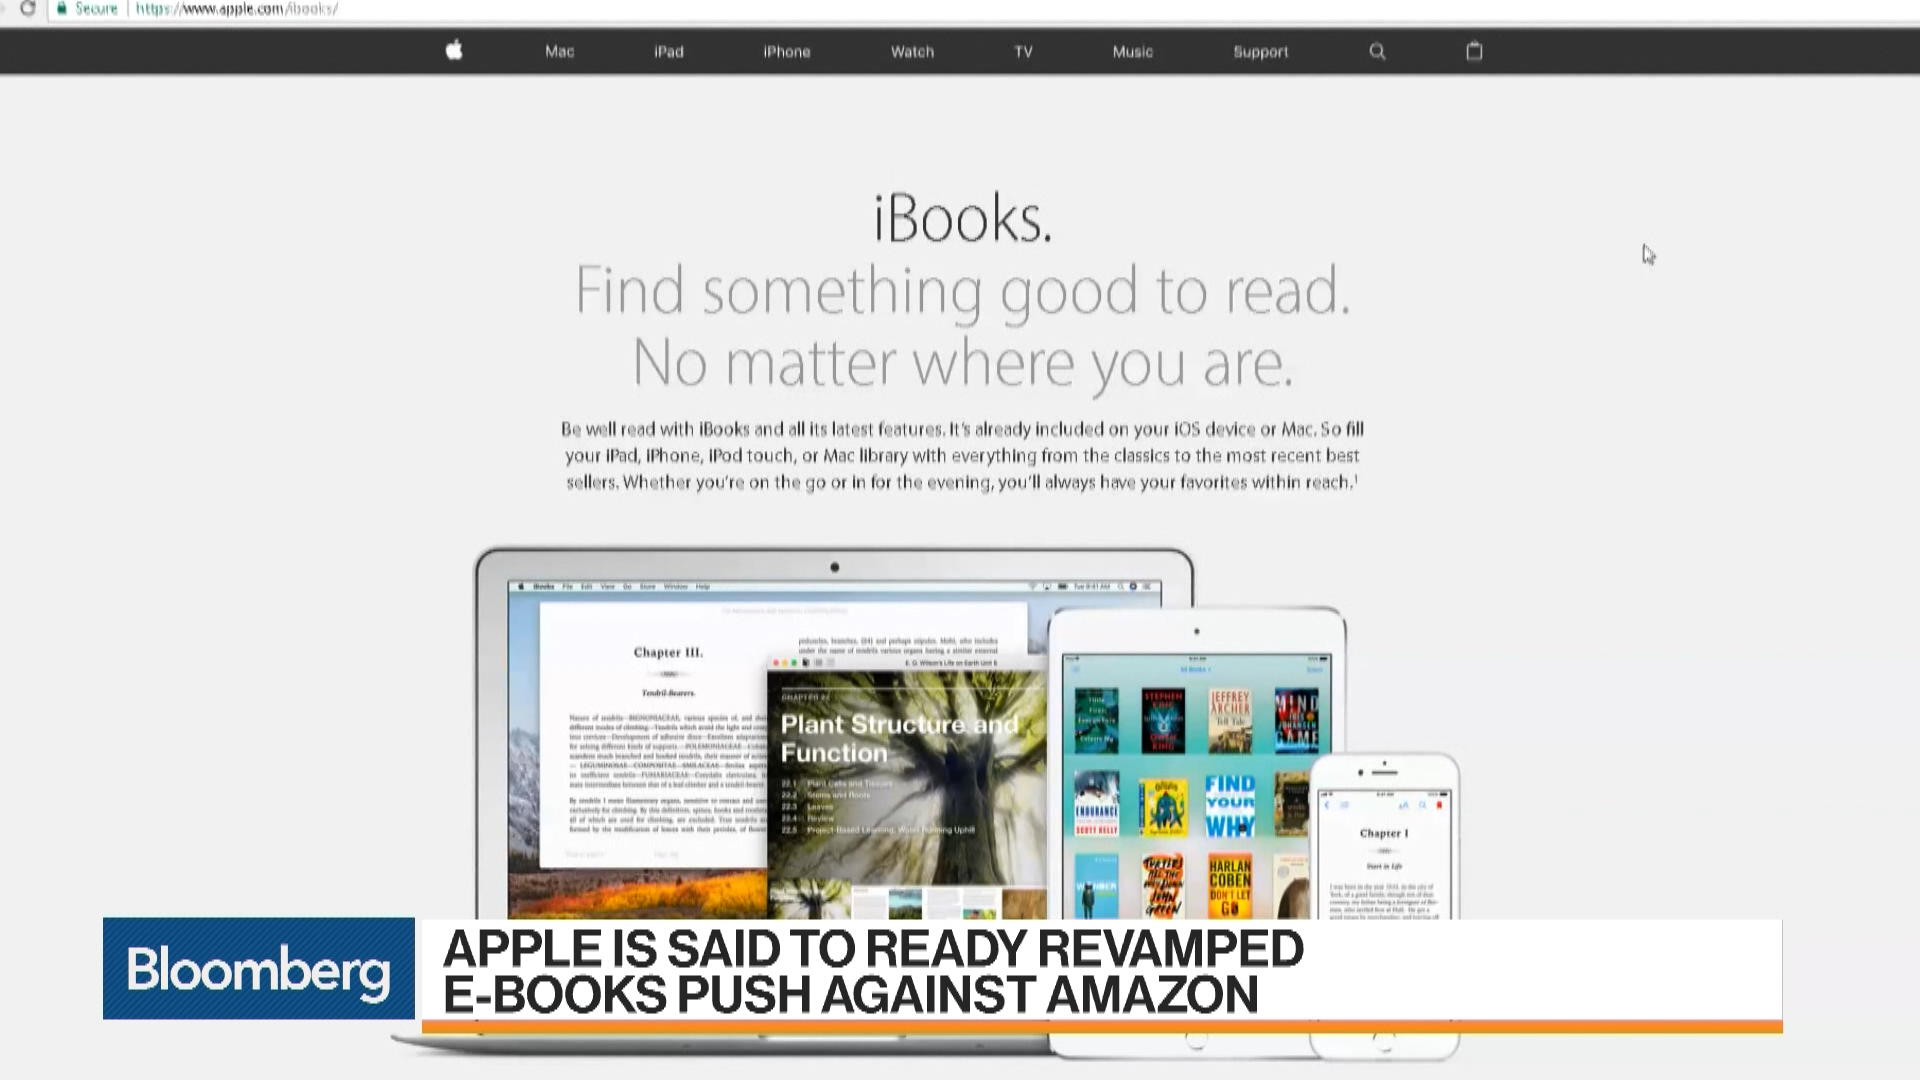 Apple's Getting Back Into the E-Books Fight Against Amazon